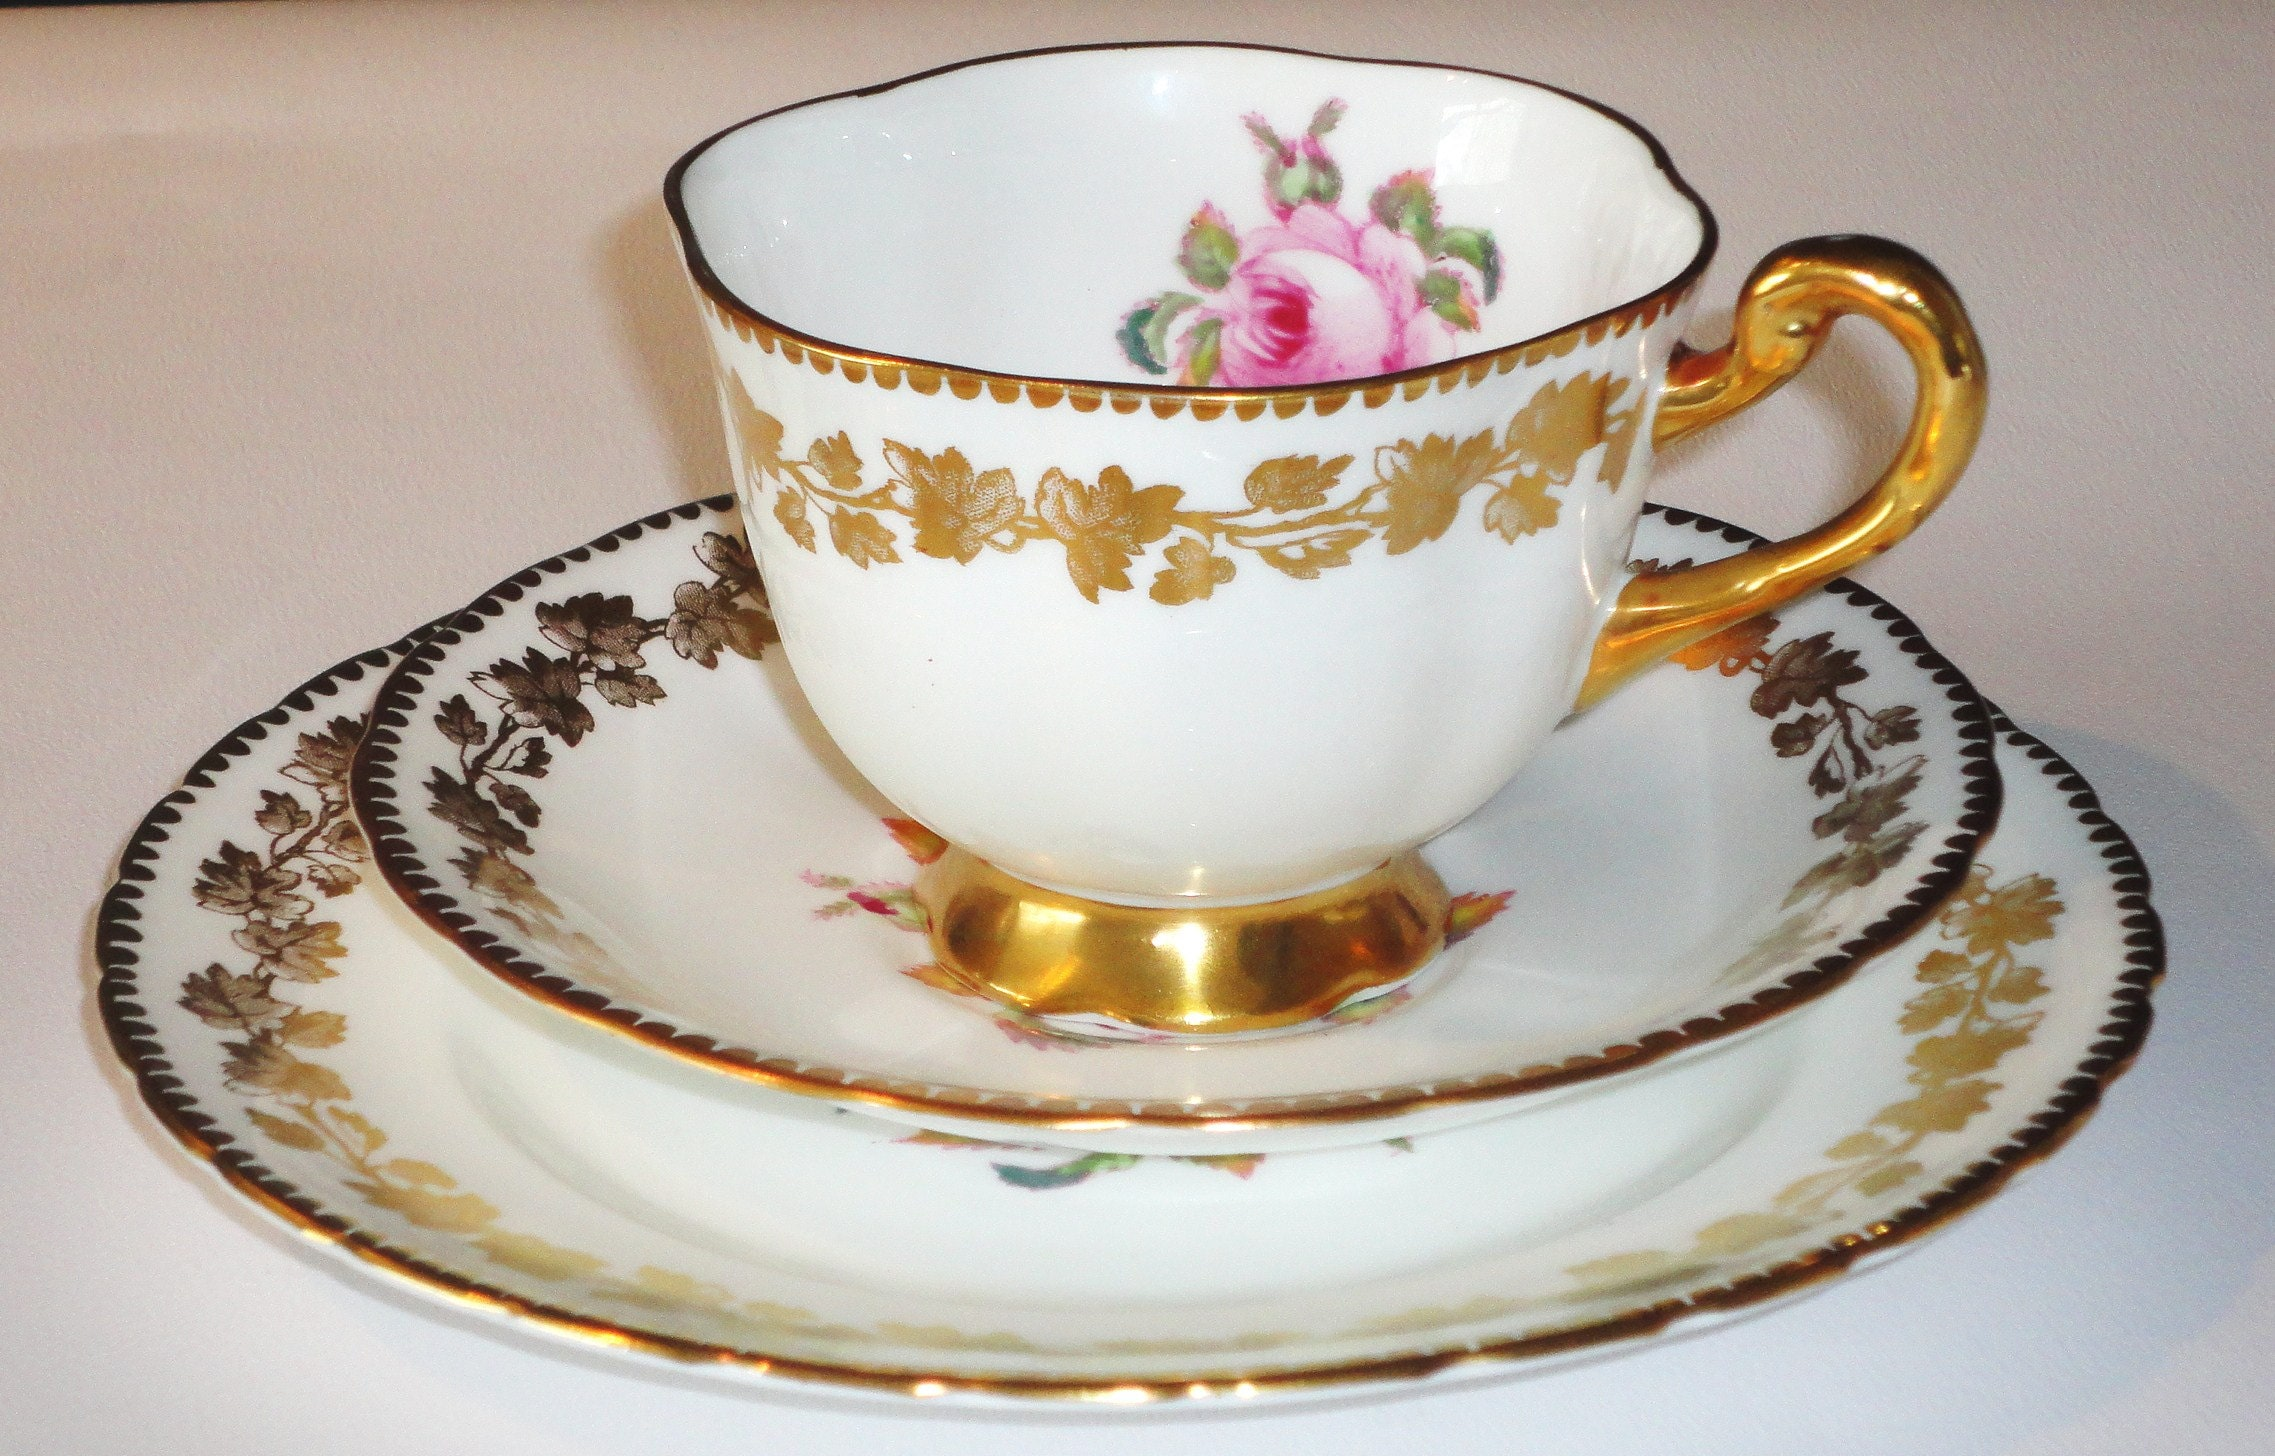 White Pink Rose China Tea cup Saucer Tea Plate Trio English vintage high tea party crockery & White Pink Rose China Tea cup Saucer Tea Plate Trio English vintage ...